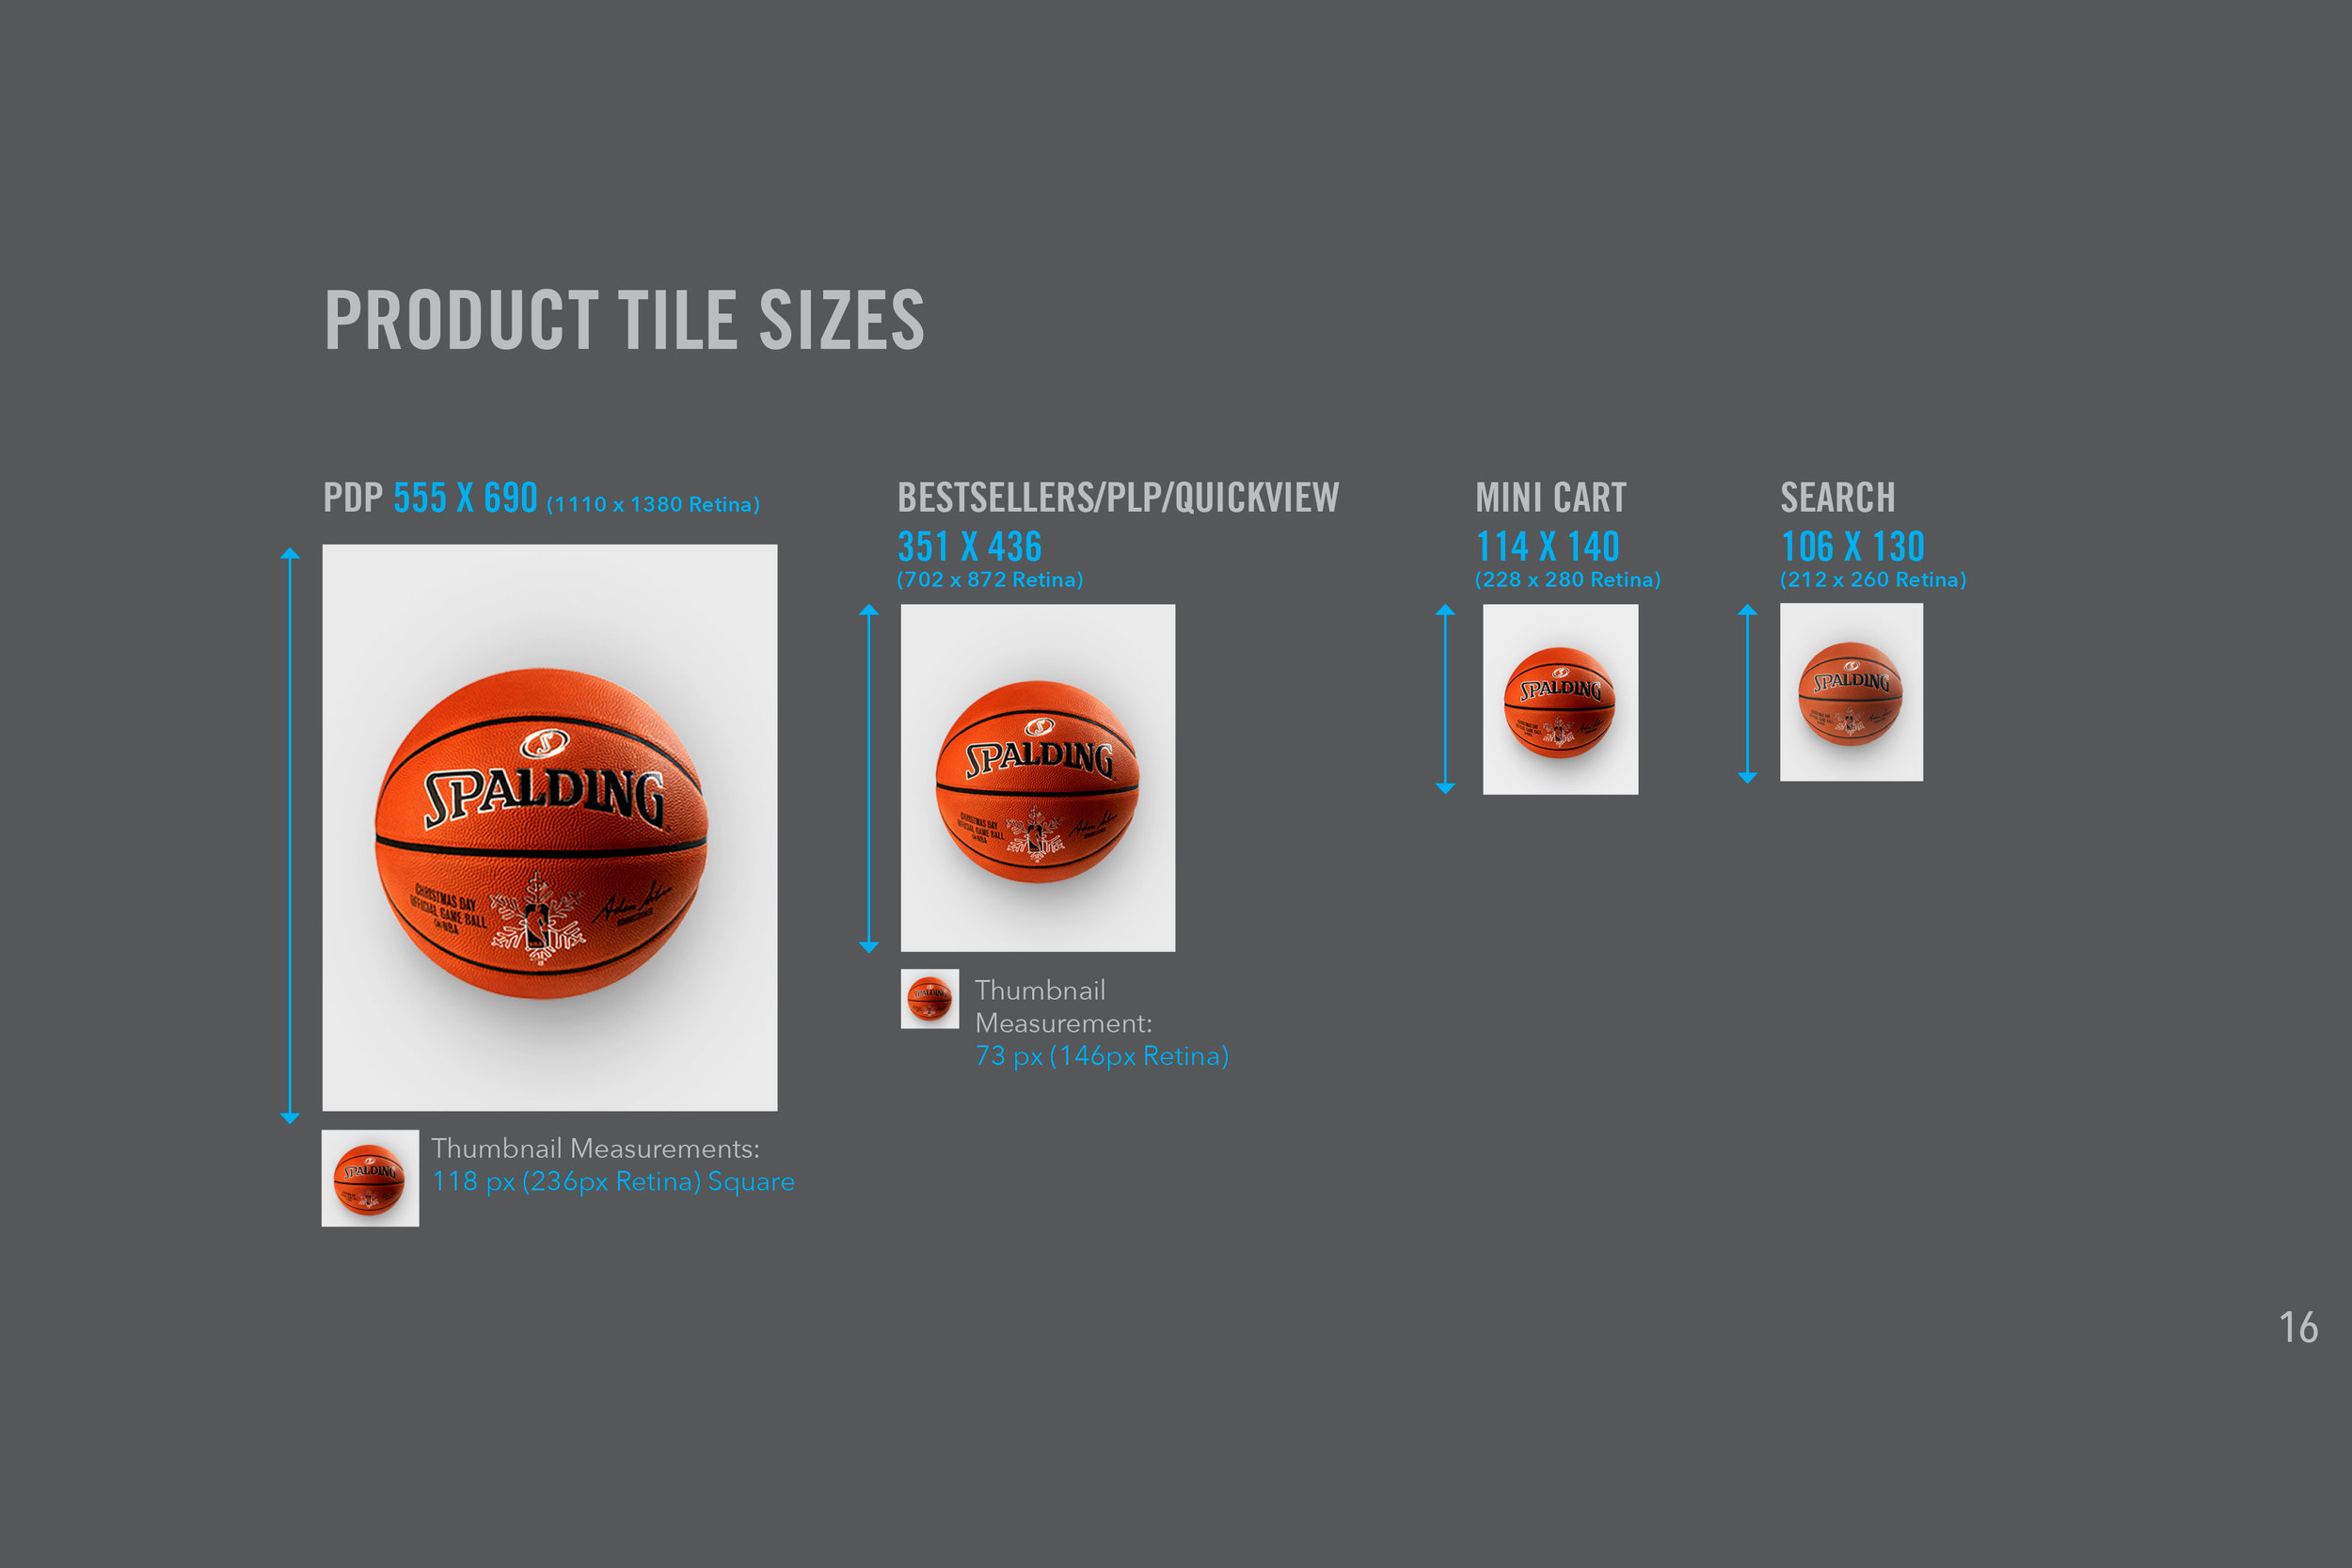 SPALDING_Styleguide_FINAL-0712-Edit 16.jpg